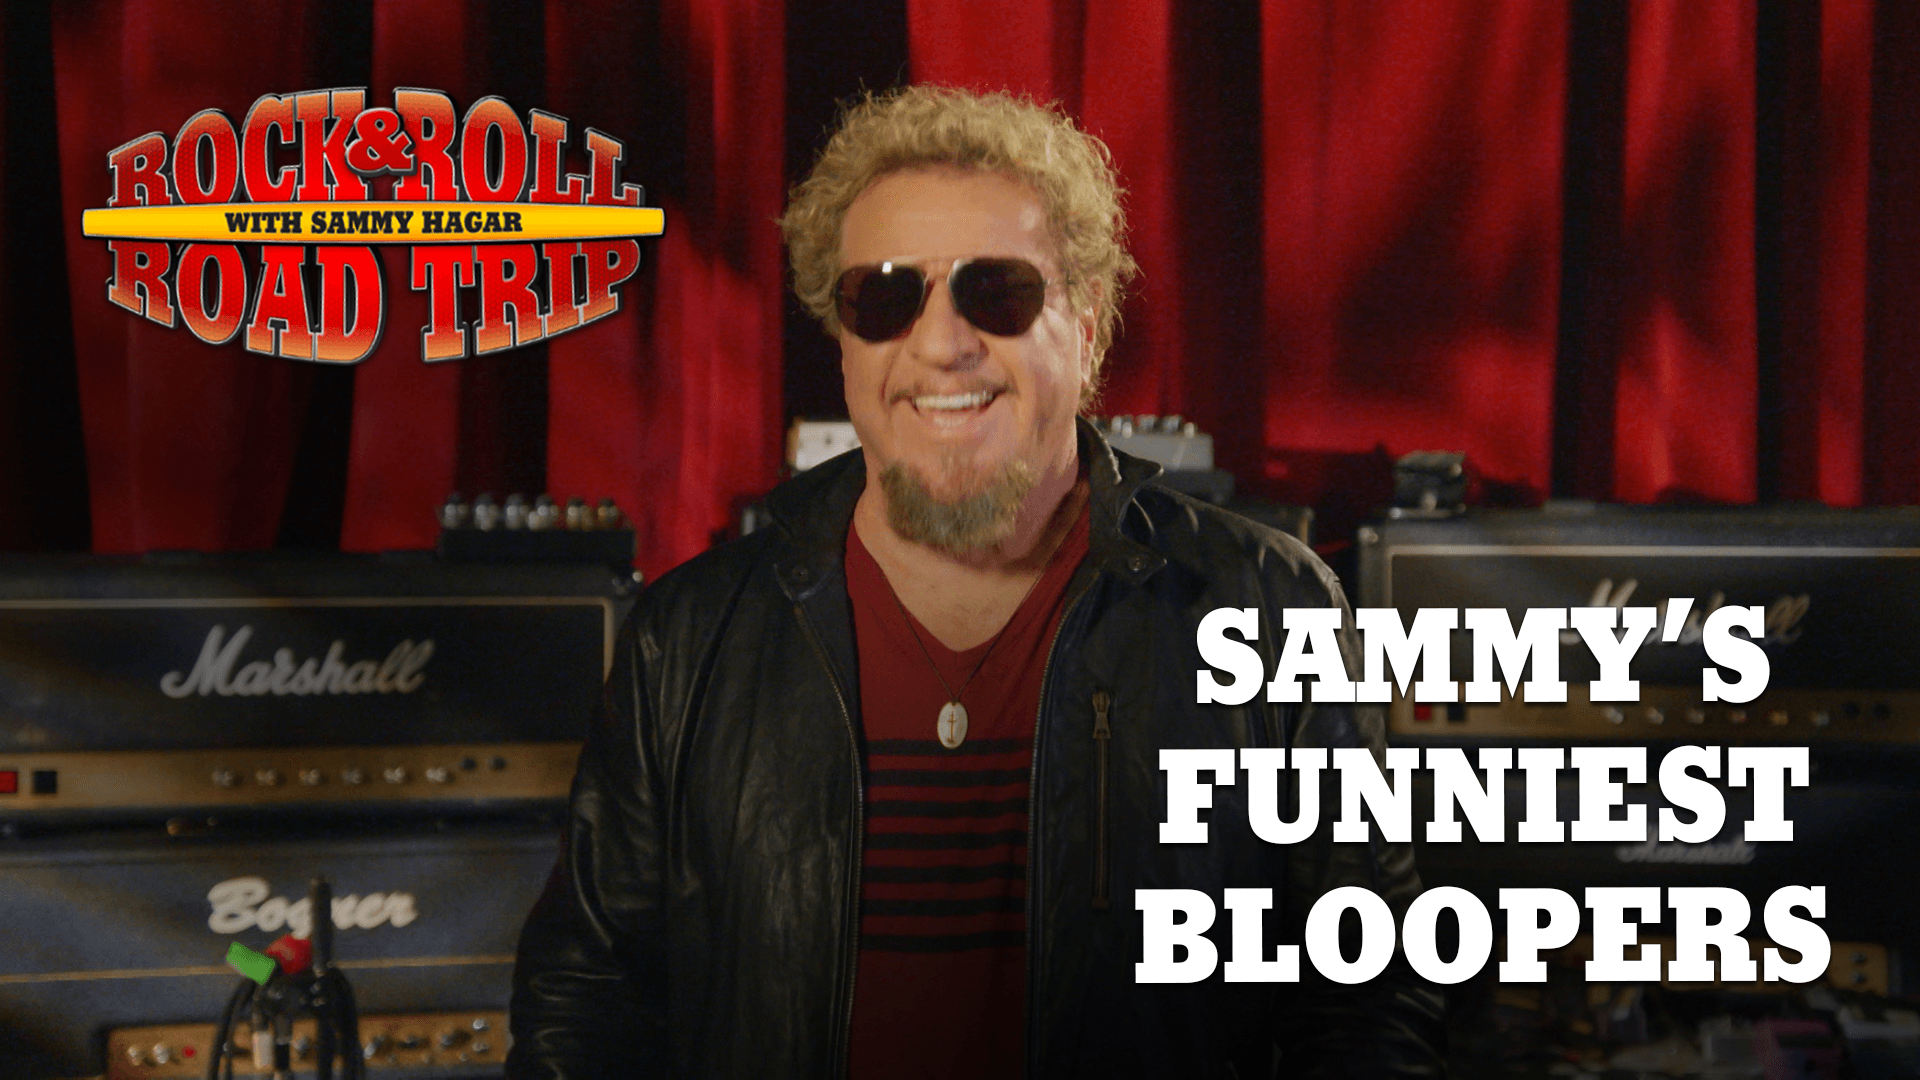 Sammy's Bloopers on Rock & Roll Road Trip with Sammy Hagar